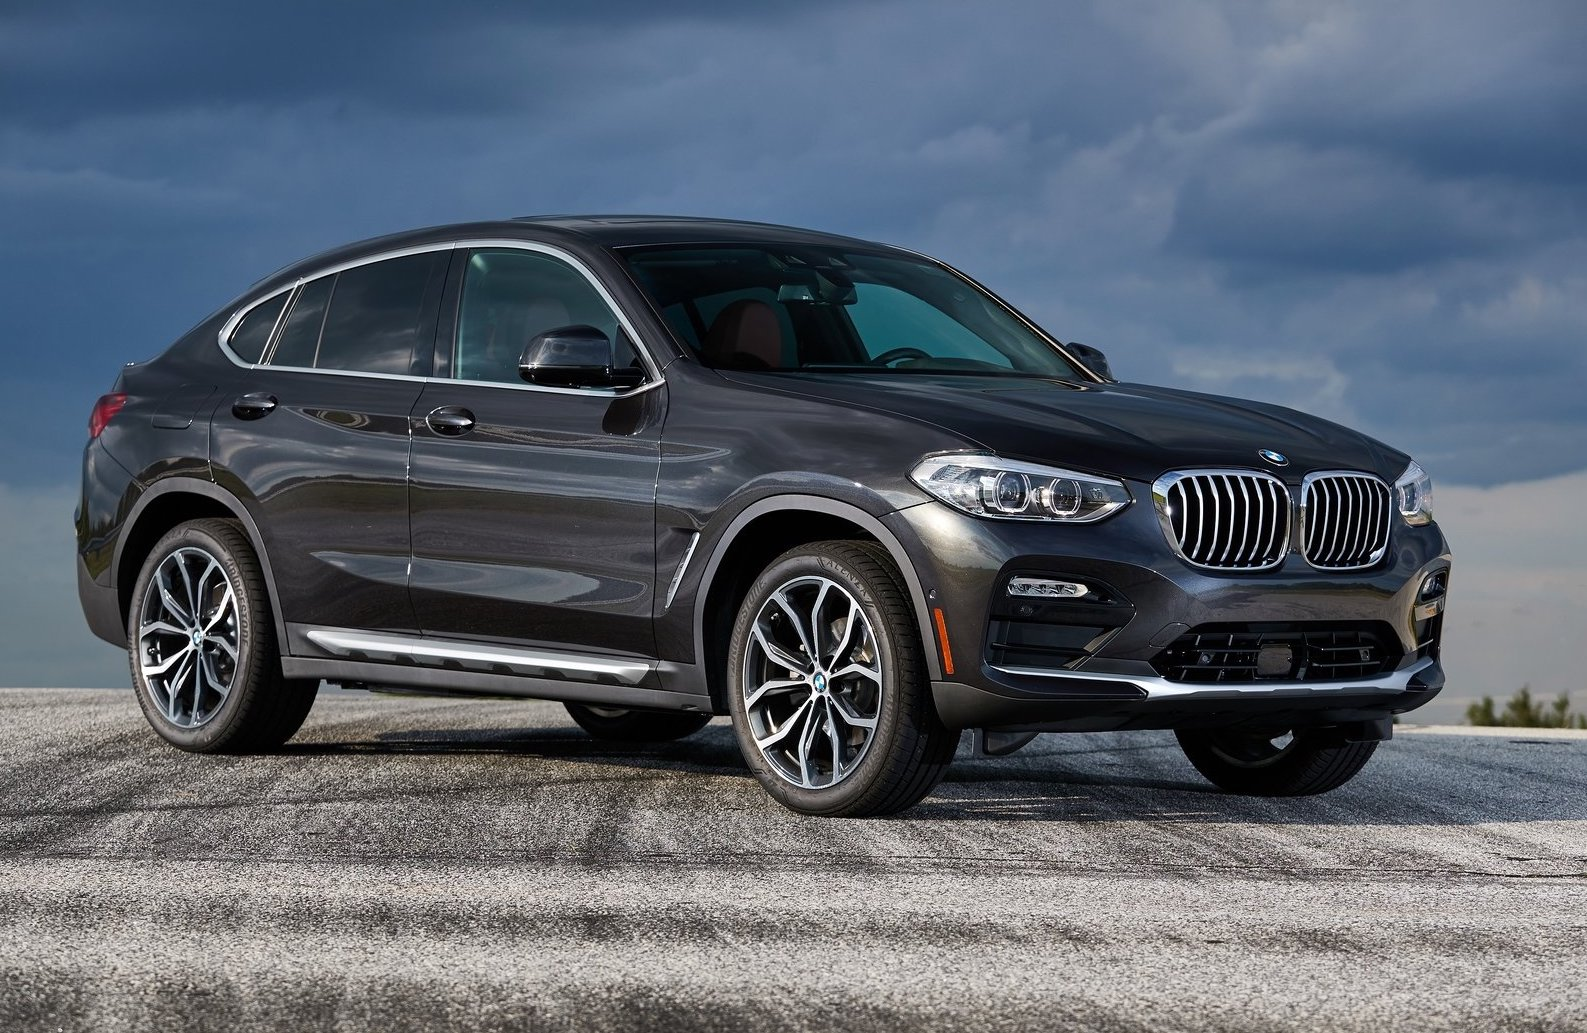 2019 Bmw X4 Australian Details Announced M40i Confirmed